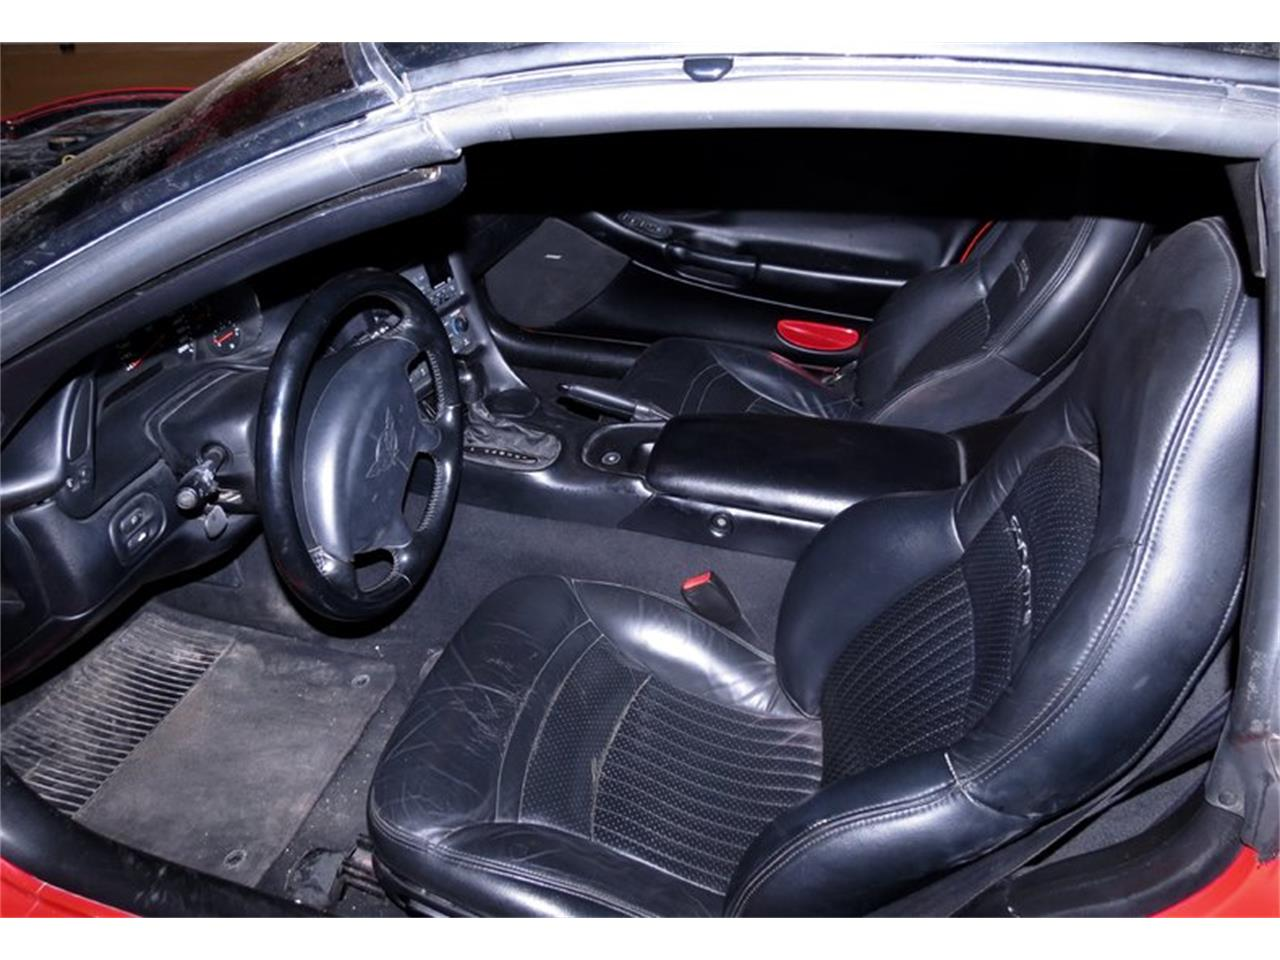 Large Picture of '98 Chevrolet Corvette located in Ohio - $12,000.00 Offered by Gem City Classic Autos - FHW7